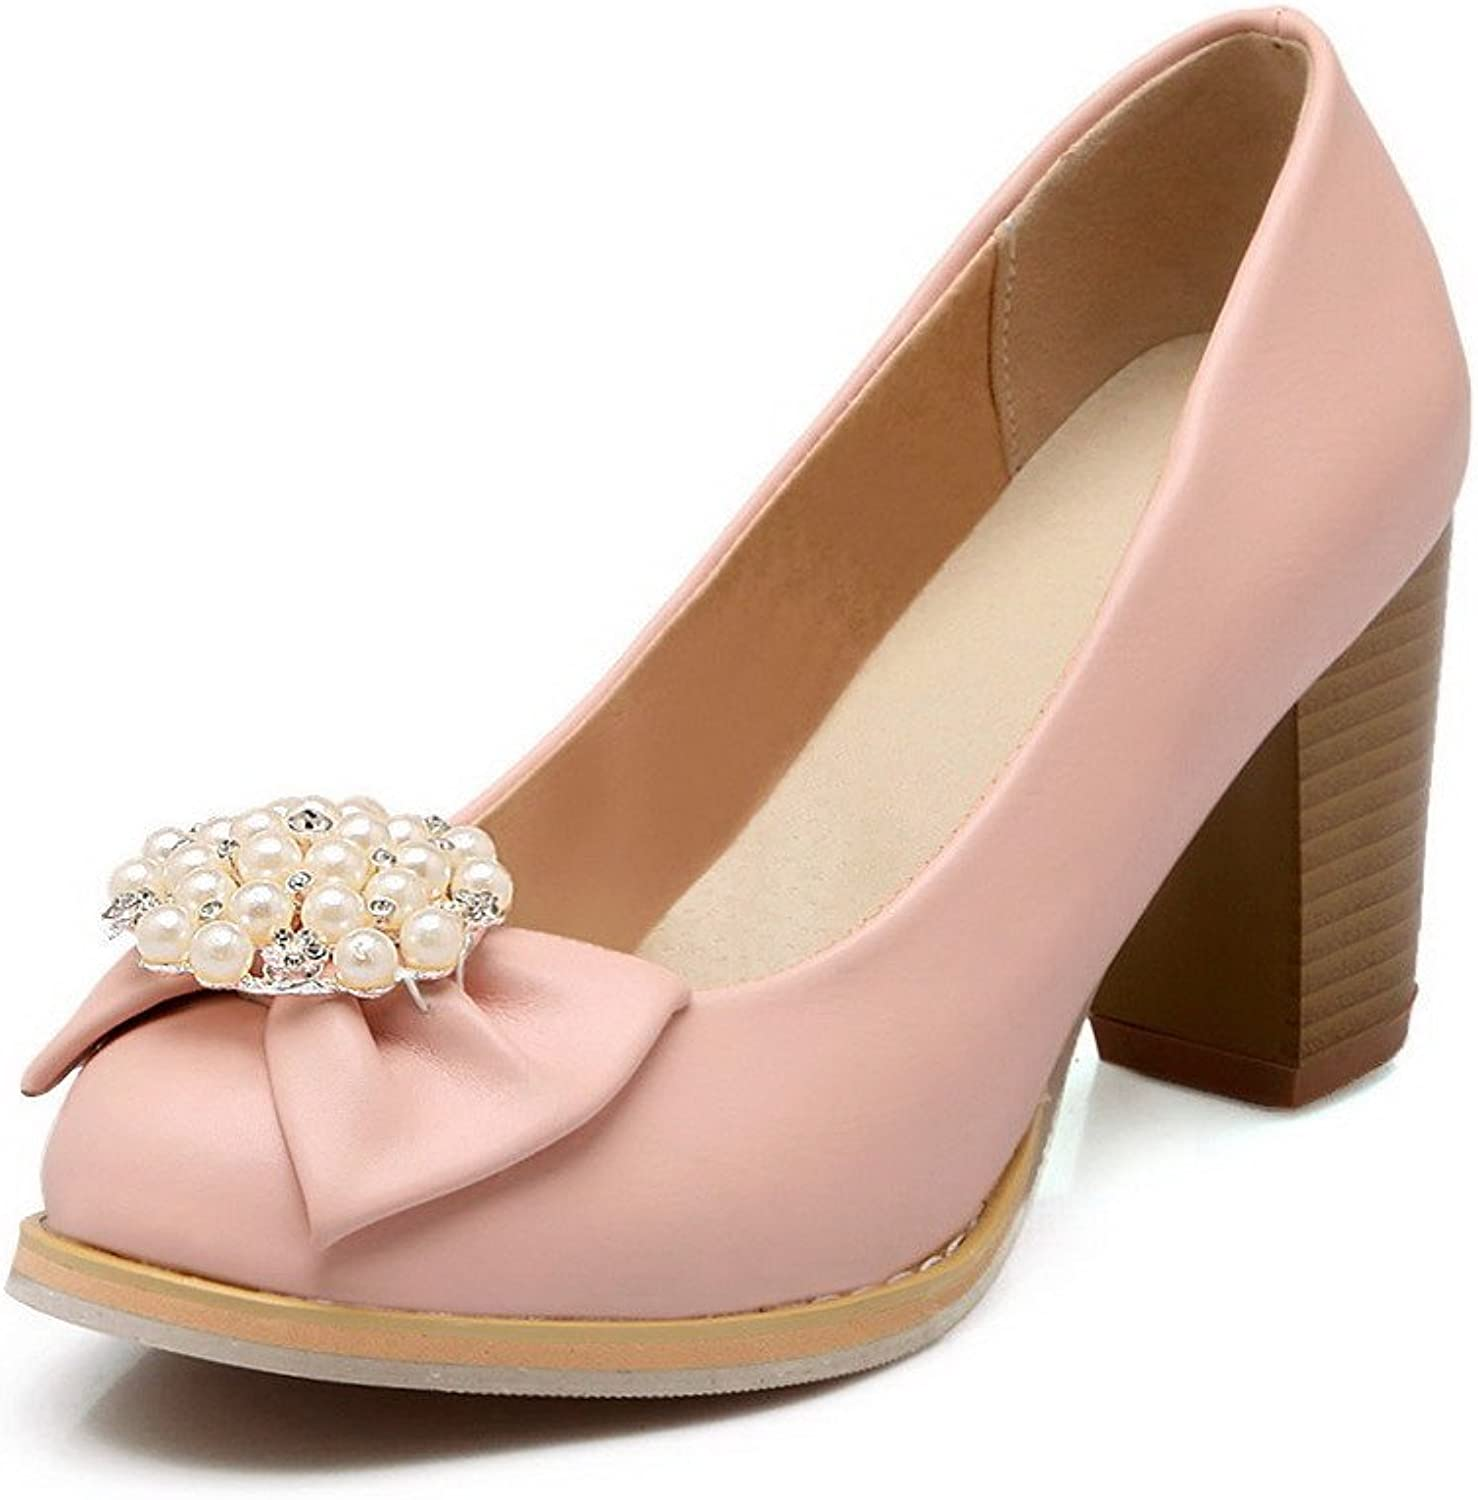 AmoonyFashion Women's Round Closed Toe High Heels Soft Material Solid Pull On Pumps-shoes